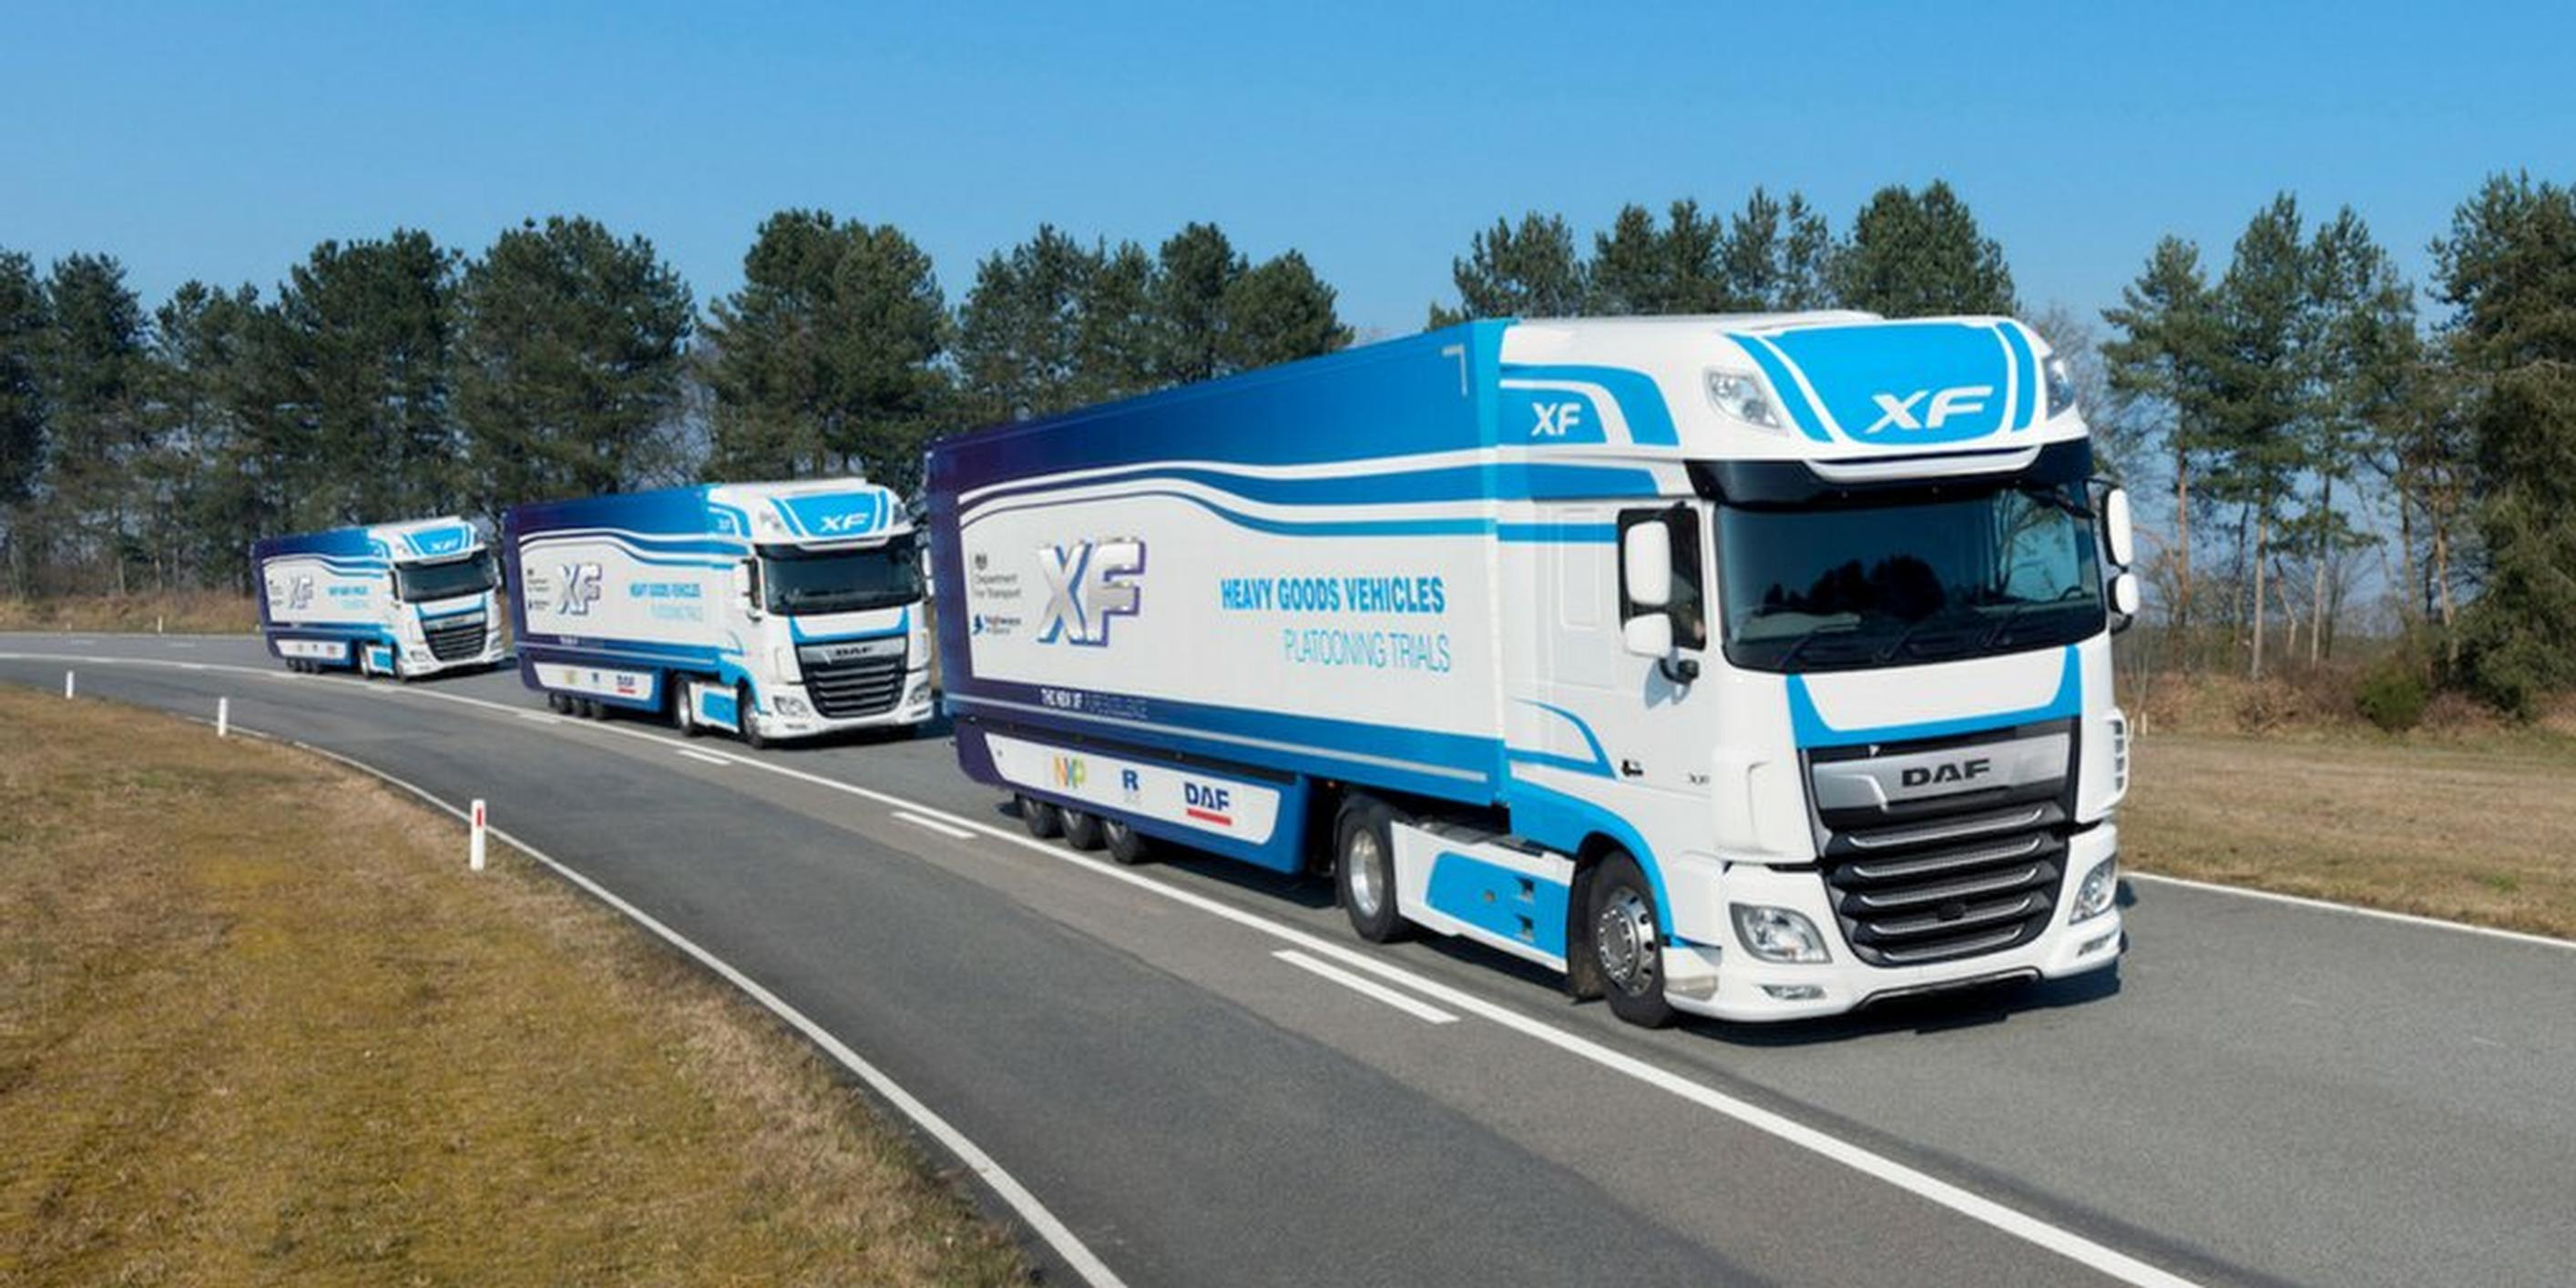 TRL, DAF and Ricardo have previously worked together on the feasibility of linked lorry platoons